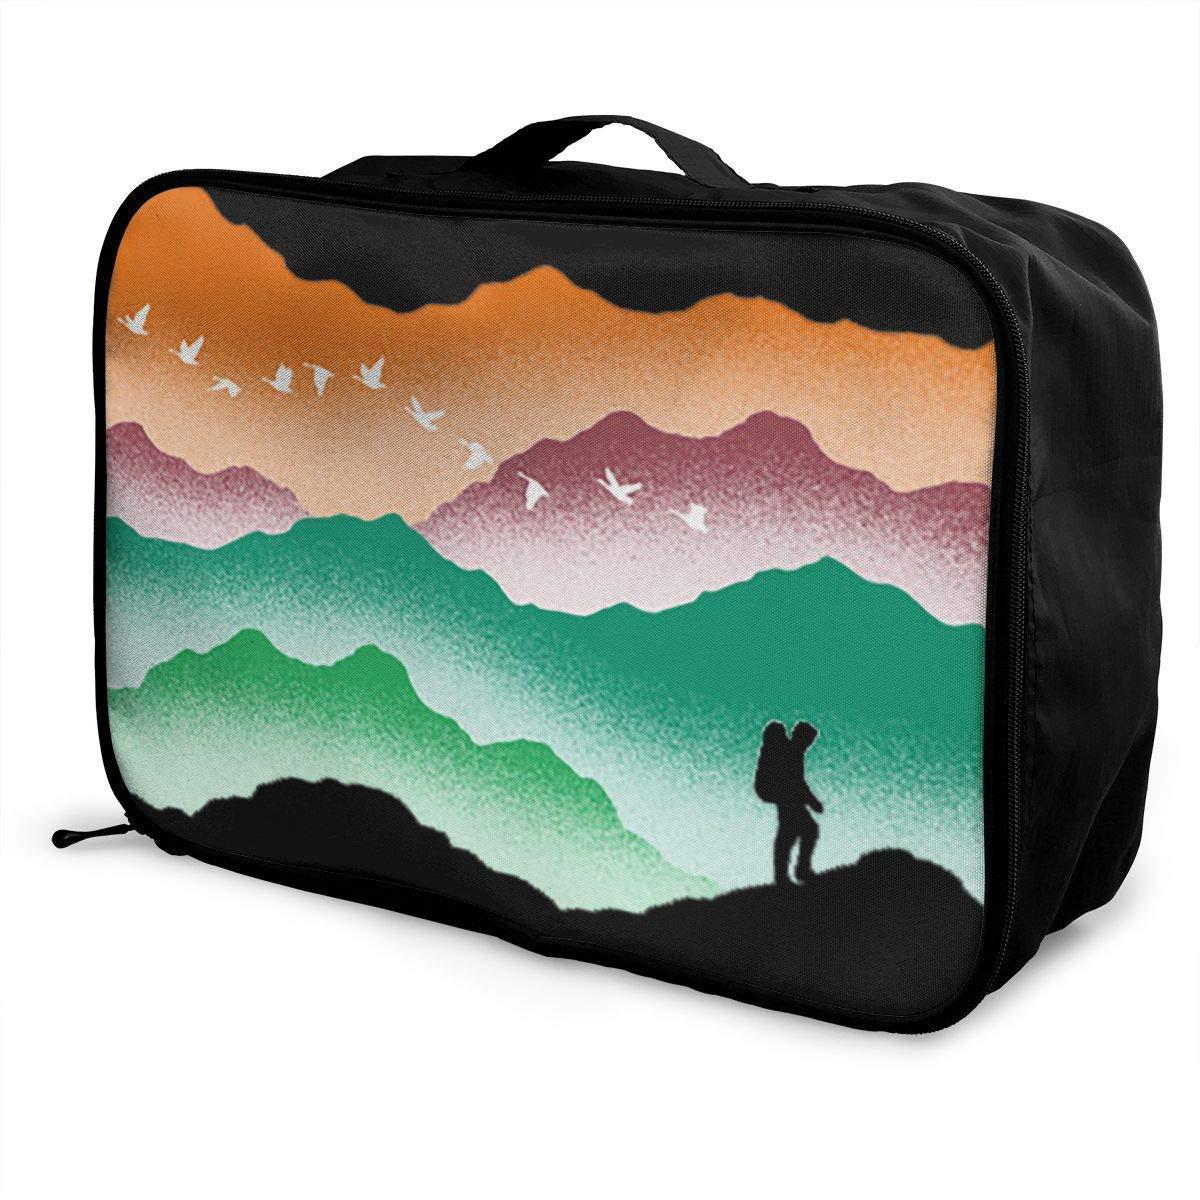 JTRVW Luggage Bags for Travel Portable Luggage Duffel Bag Colorful Mountain Travel Bags Carry-on in Trolley Handle